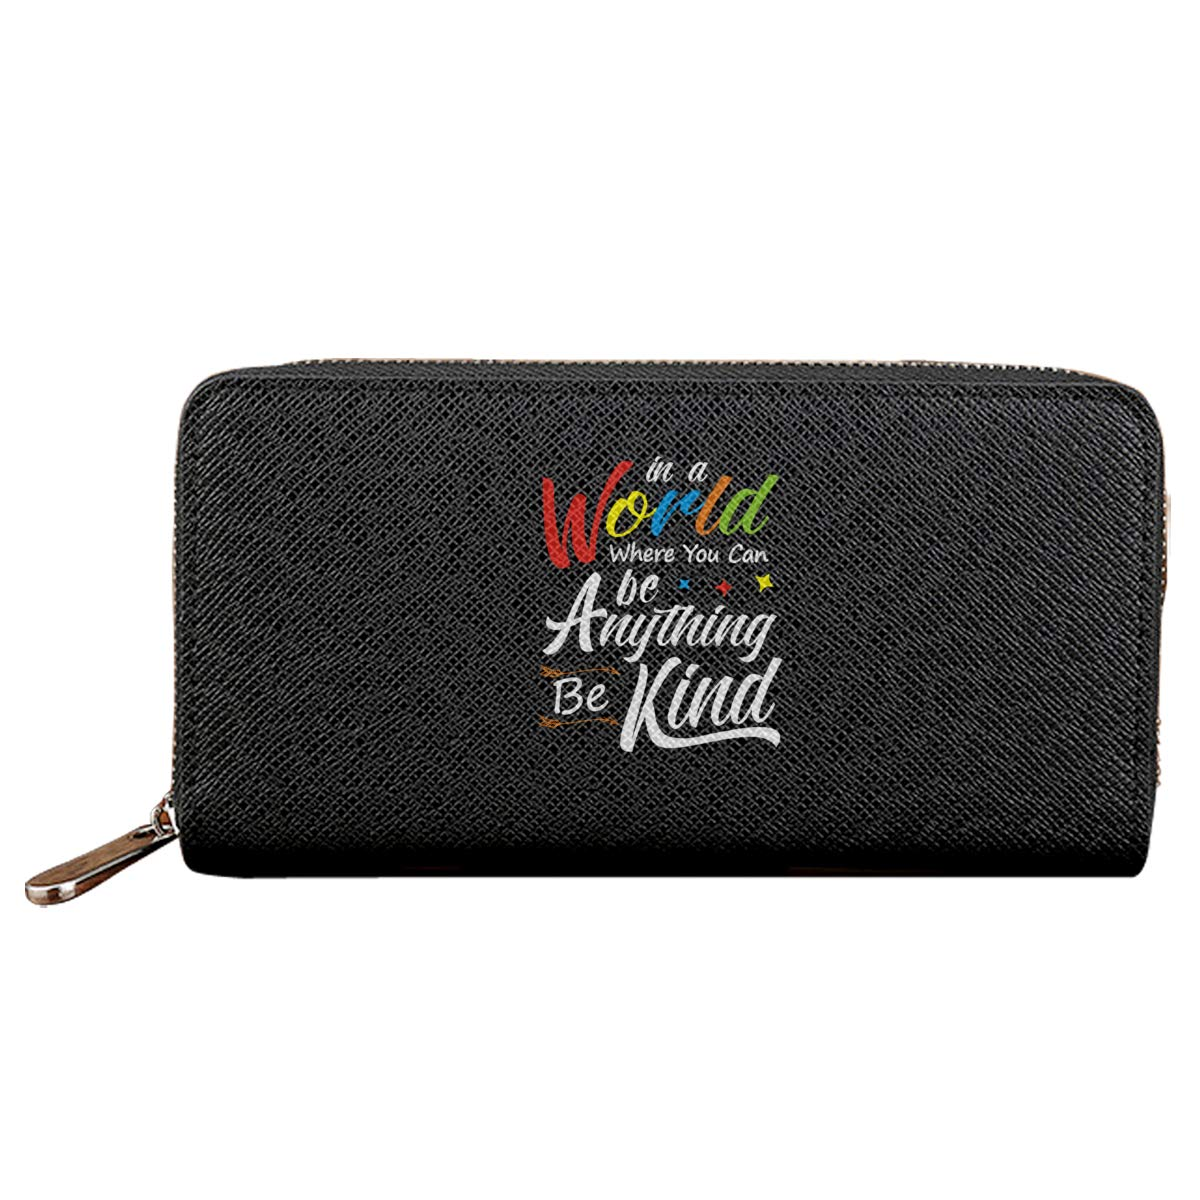 In A World Where You Can Be Anything Be Kind 1 Long Wallet PU Leather Zipper